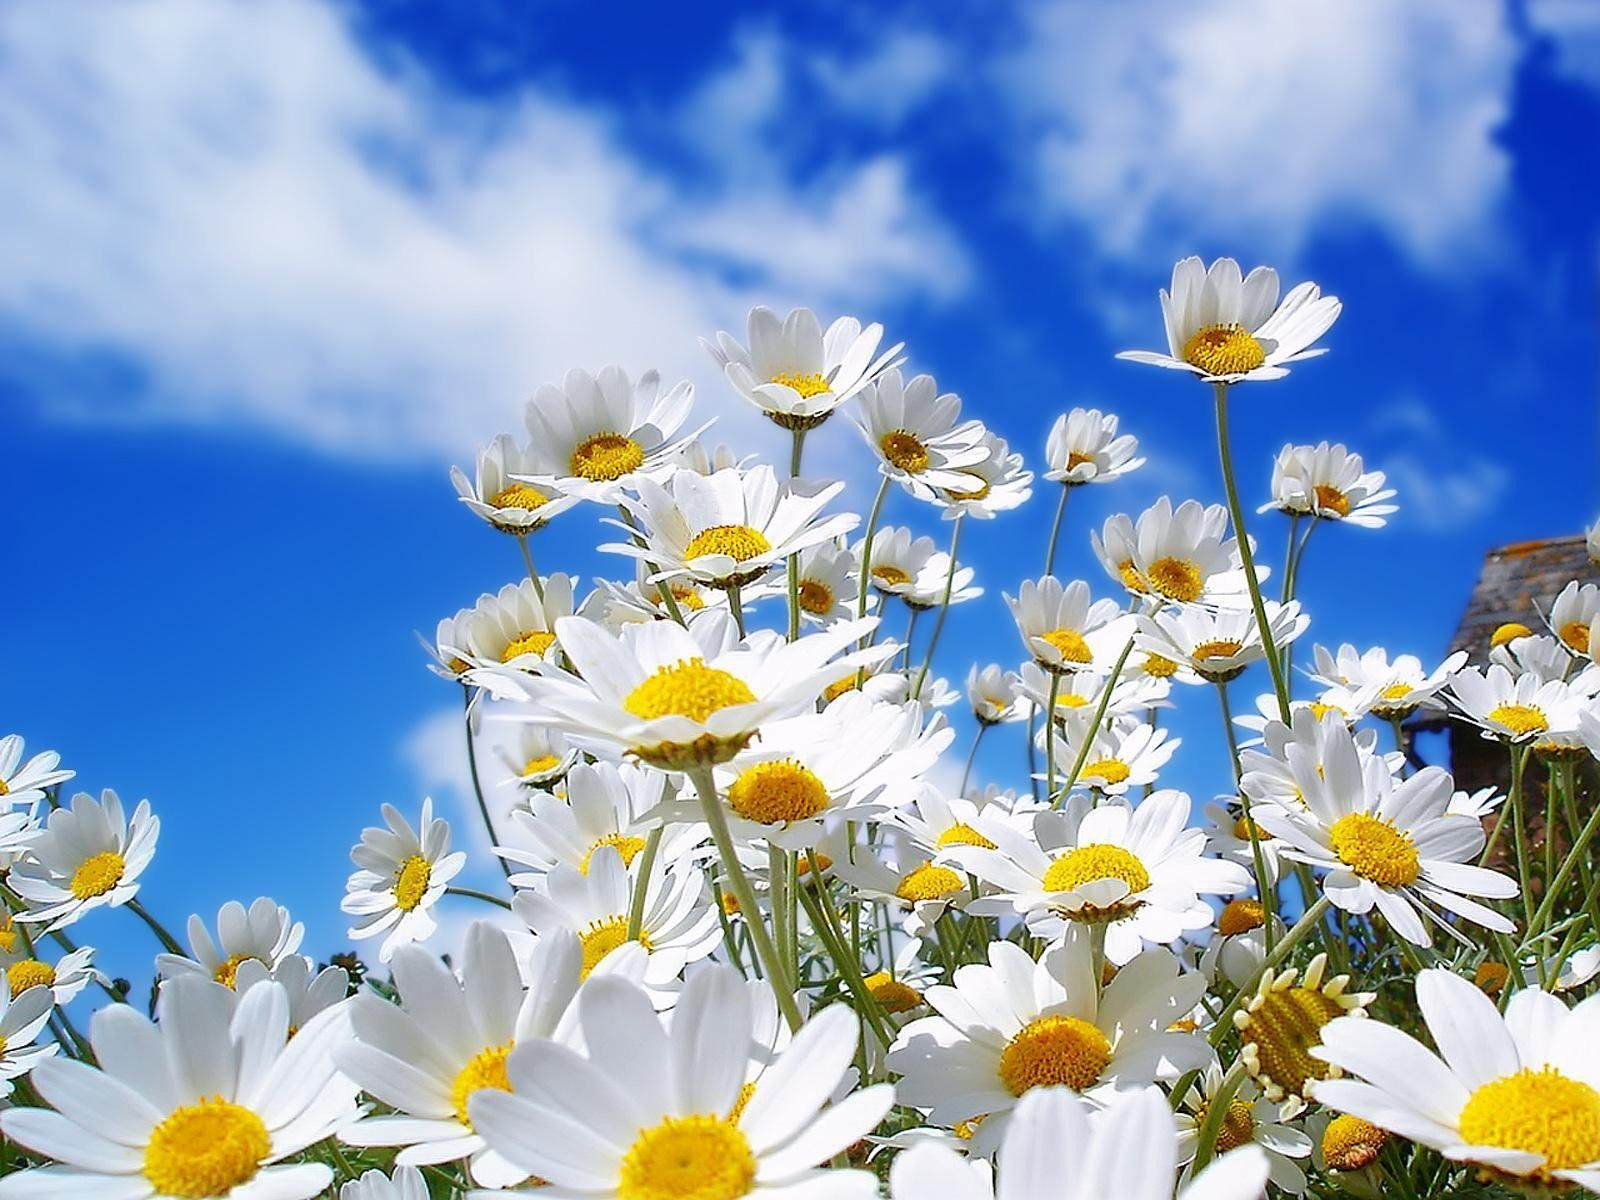 Daisies Spring Flowers Wallpaper Daisy Flower Pictures Flower Pictures